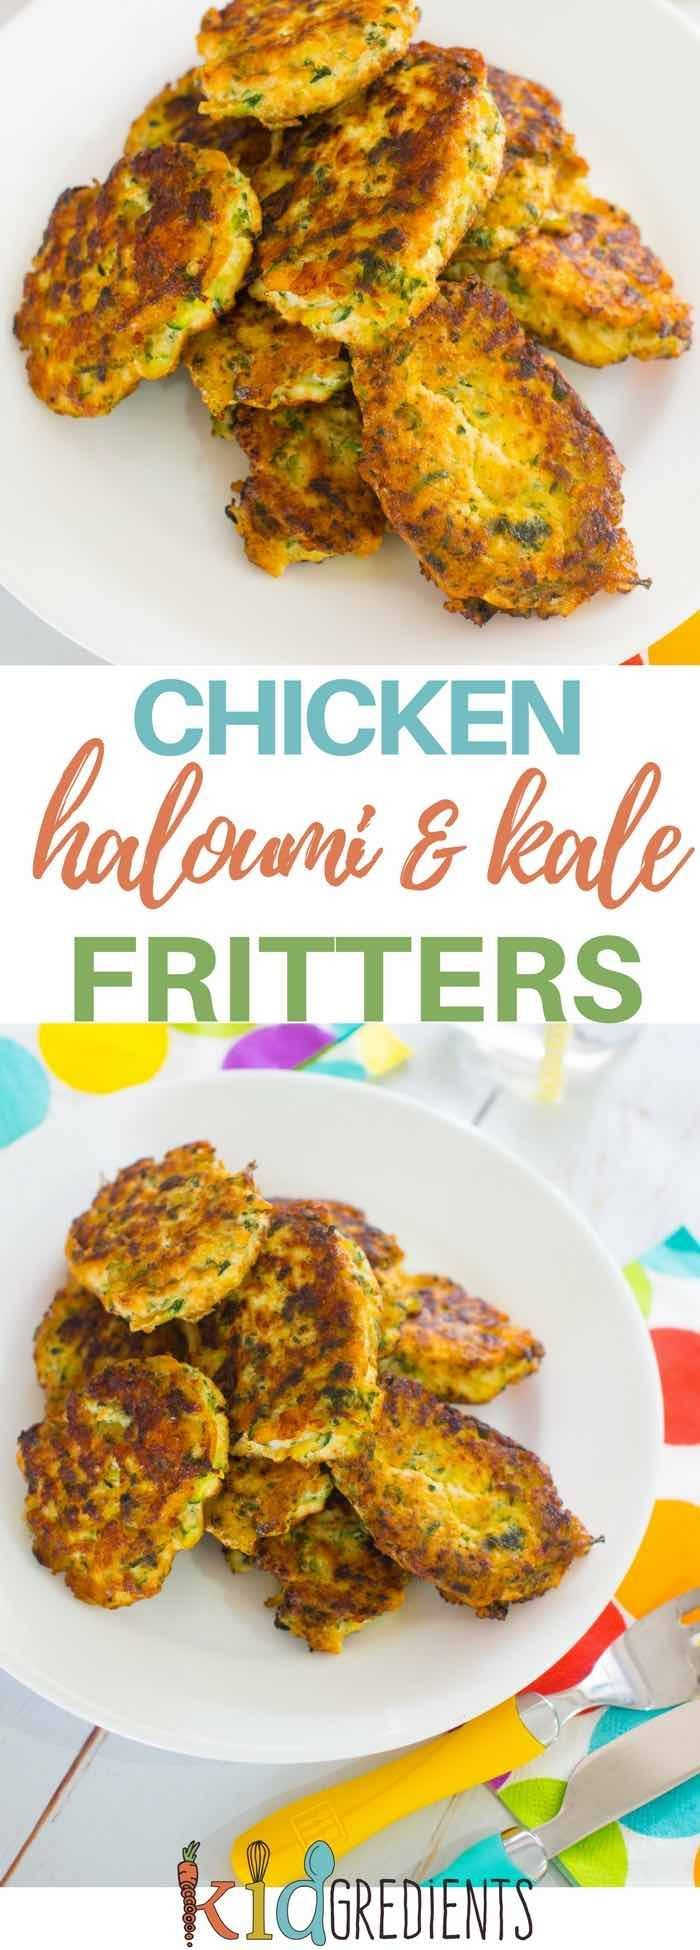 Chicken haloumi and kale fritters, kid friendly easy 4 ingredients recipe.  Perfect for the lunchbox or as a yummy dinner! #kidgredients #kidsfood #chicken #kale #dairyfree #fritters via @kidgredients